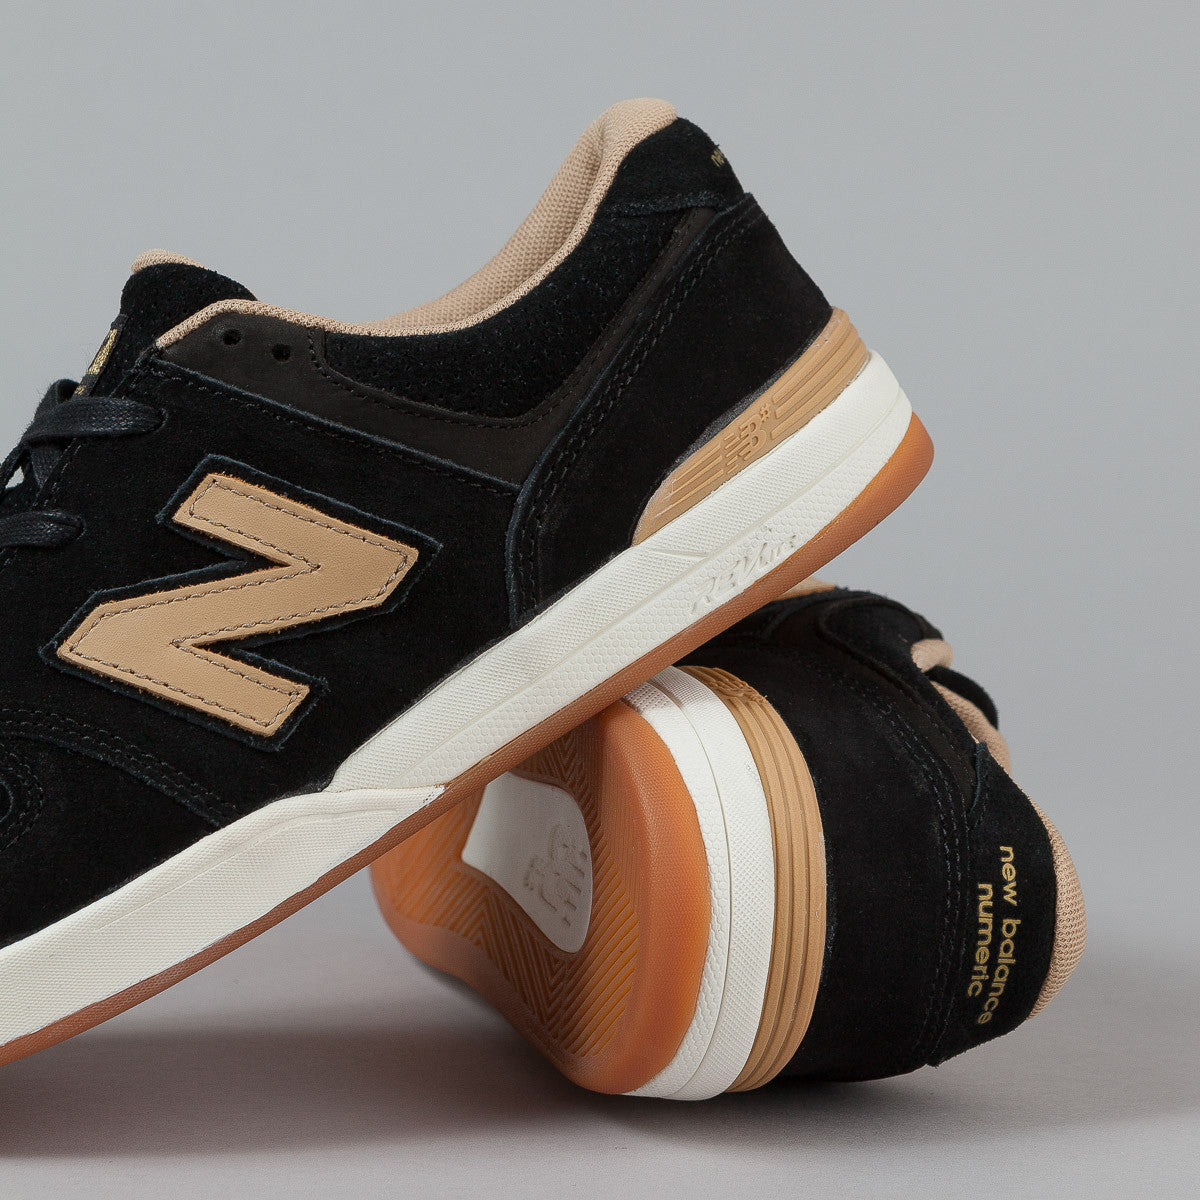 New Balance Numeric Logan S 636 - Black / Tan